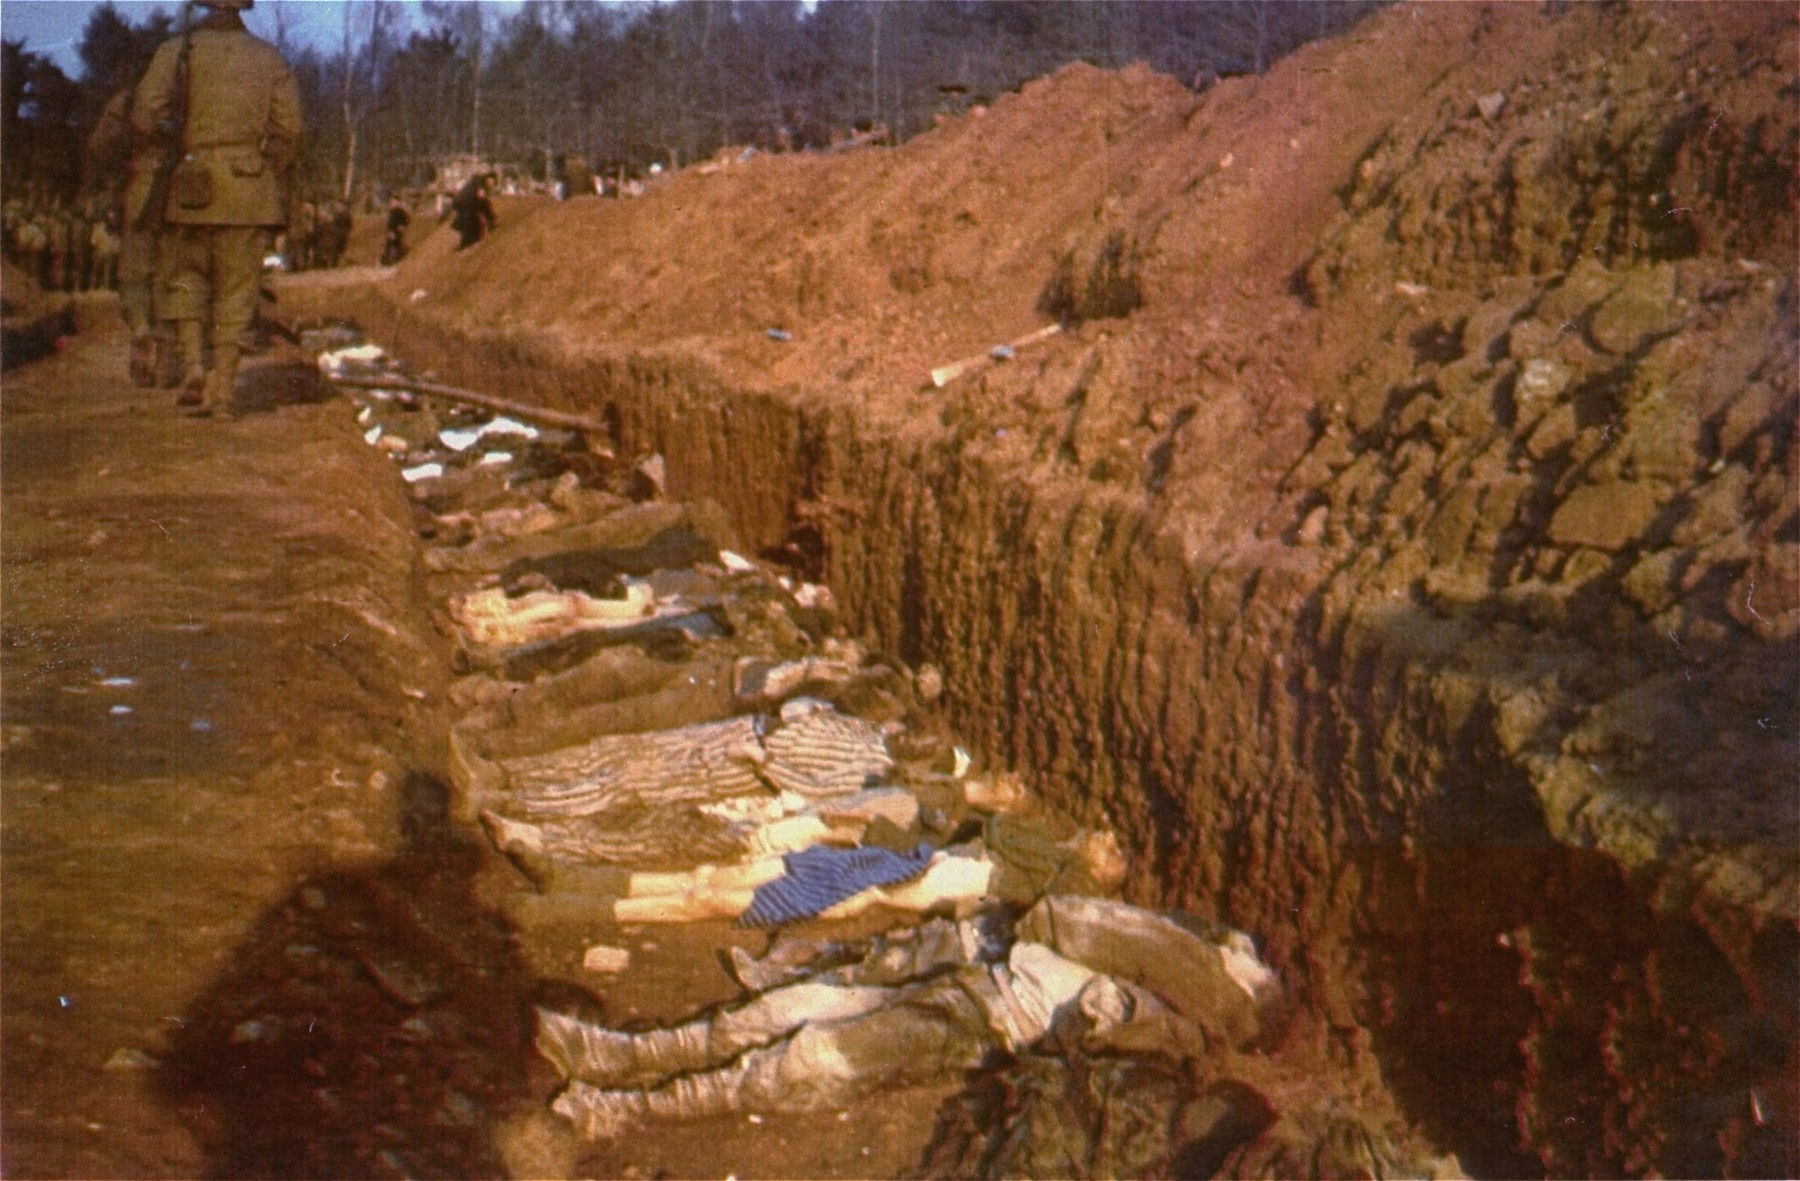 The bodies of prisoners killed in the Nordhausen concentration camp lie in a mass grave dug by German civilians under orders from American troops.